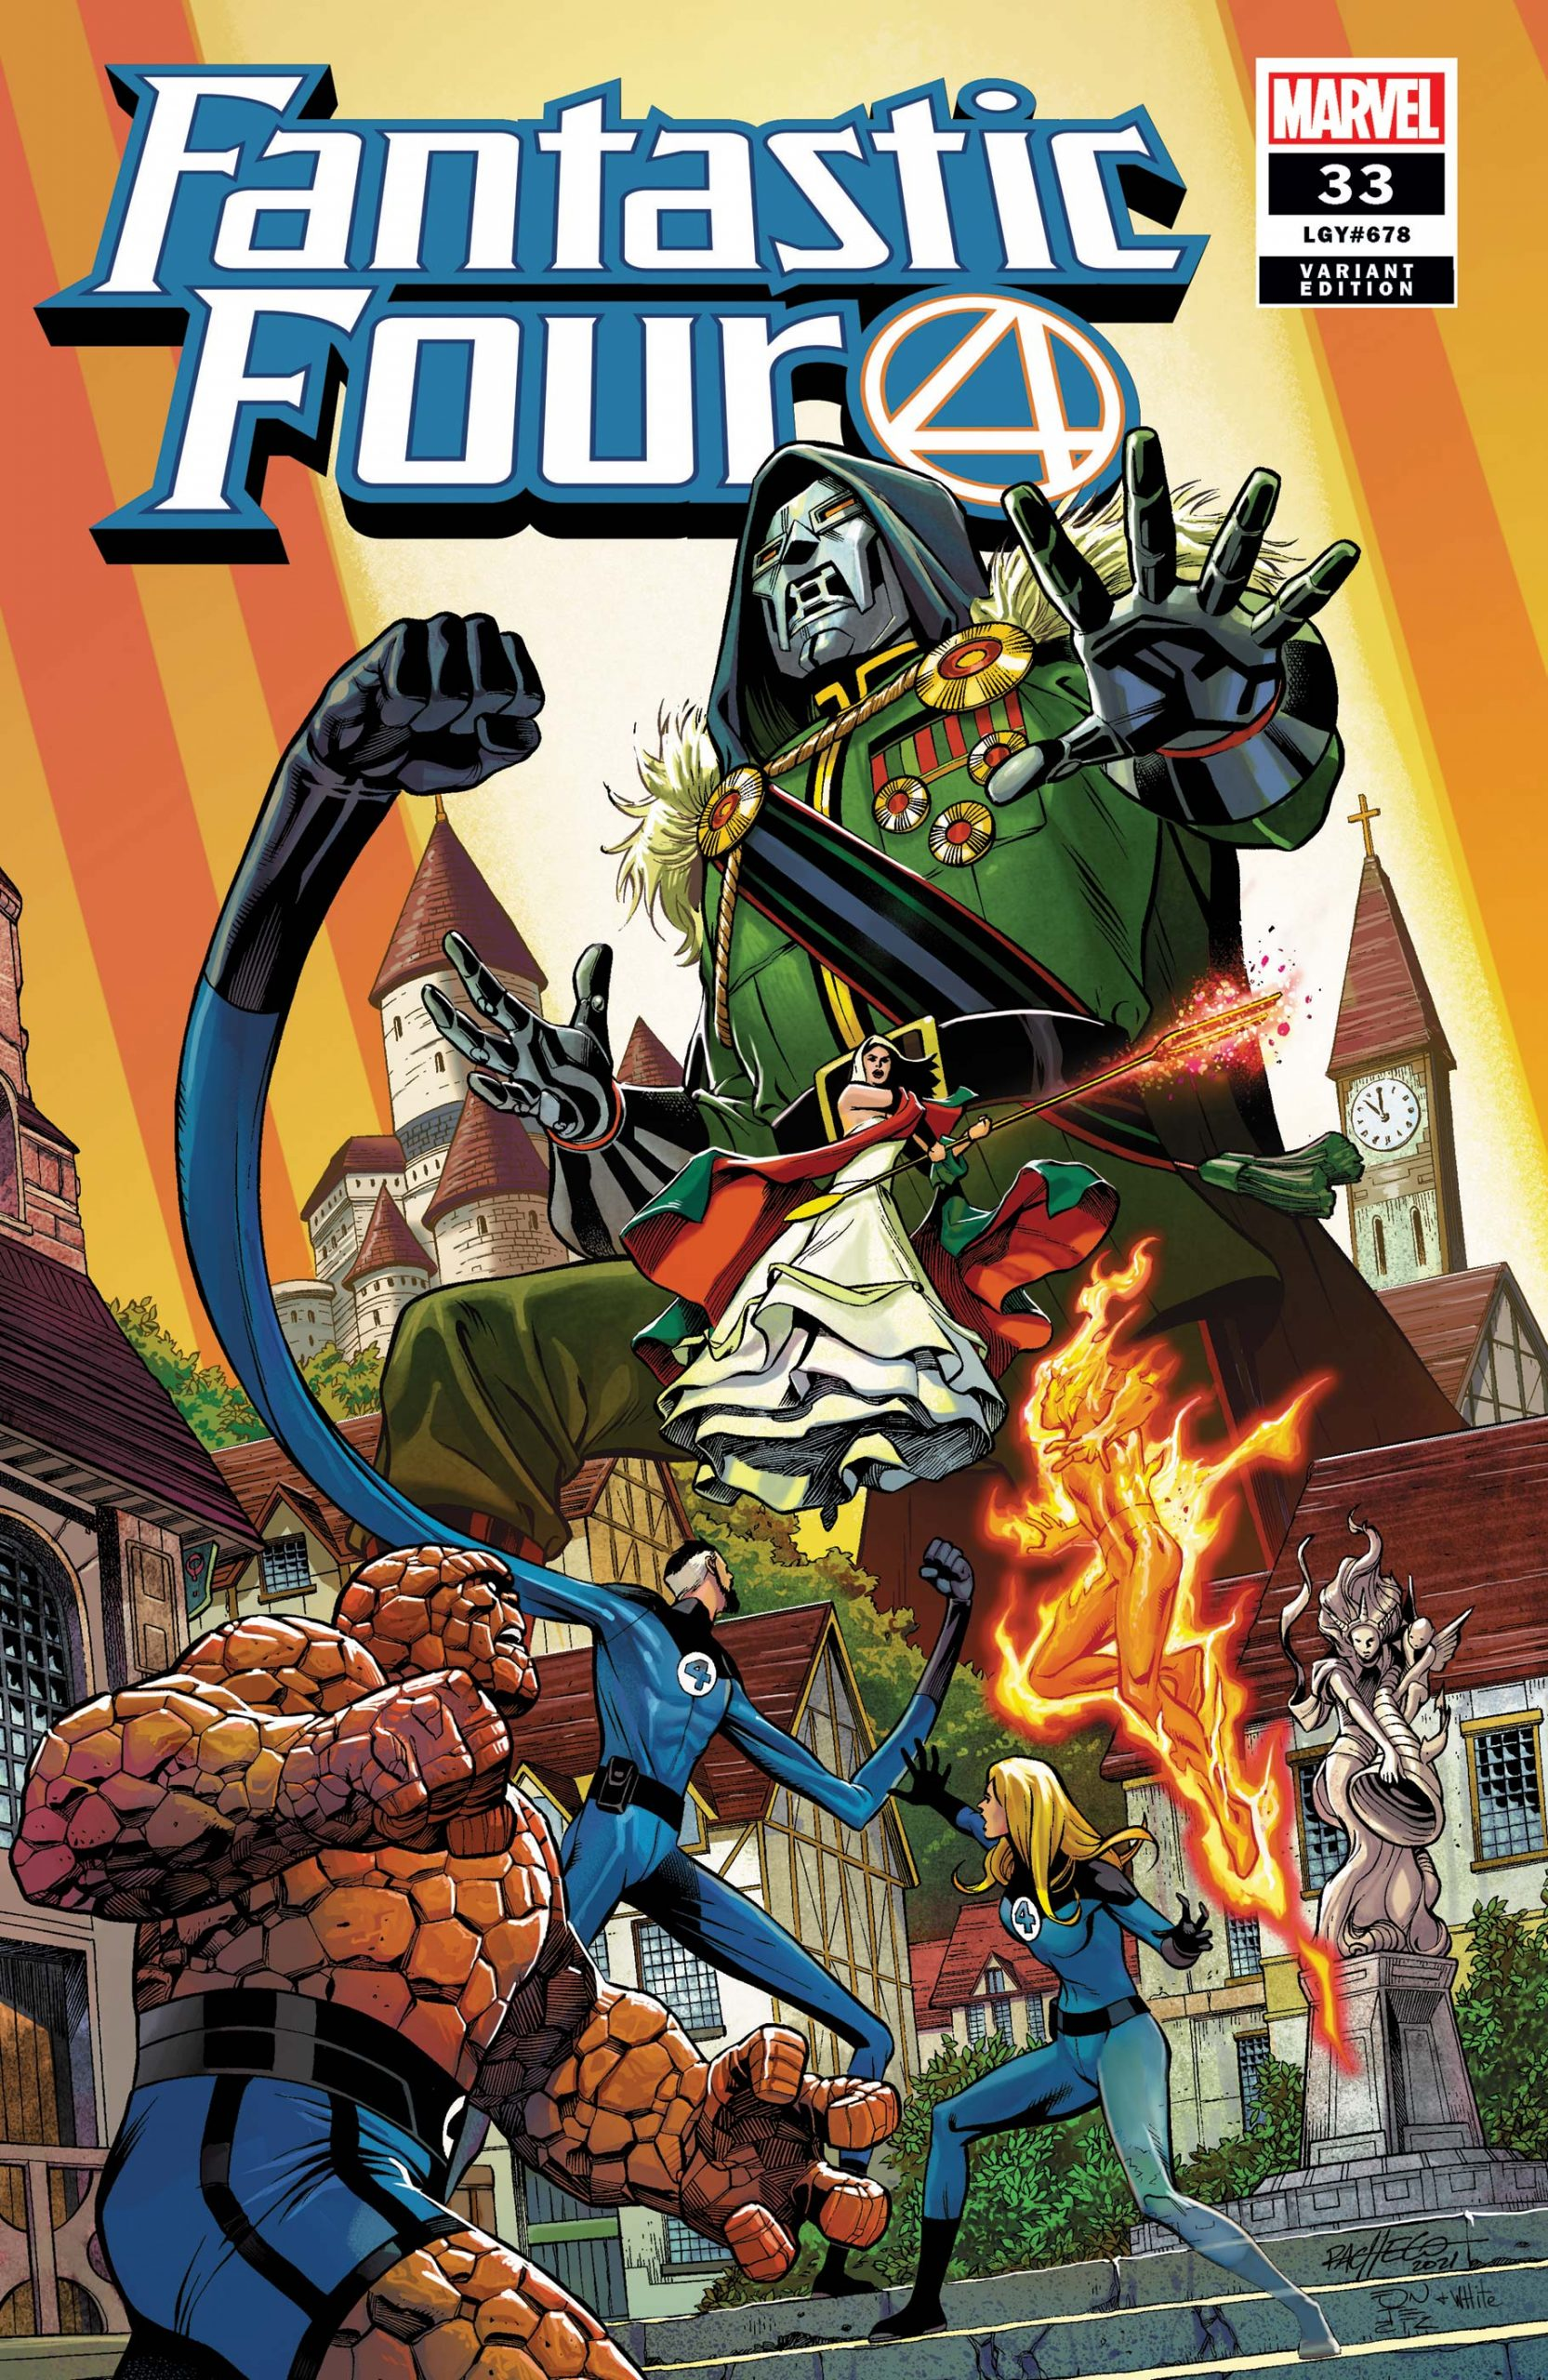 Fantastic-Four-33-spoilers-0-4-scaled-1 Fantastic-Four-33-spoilers-0-4-scaled-1